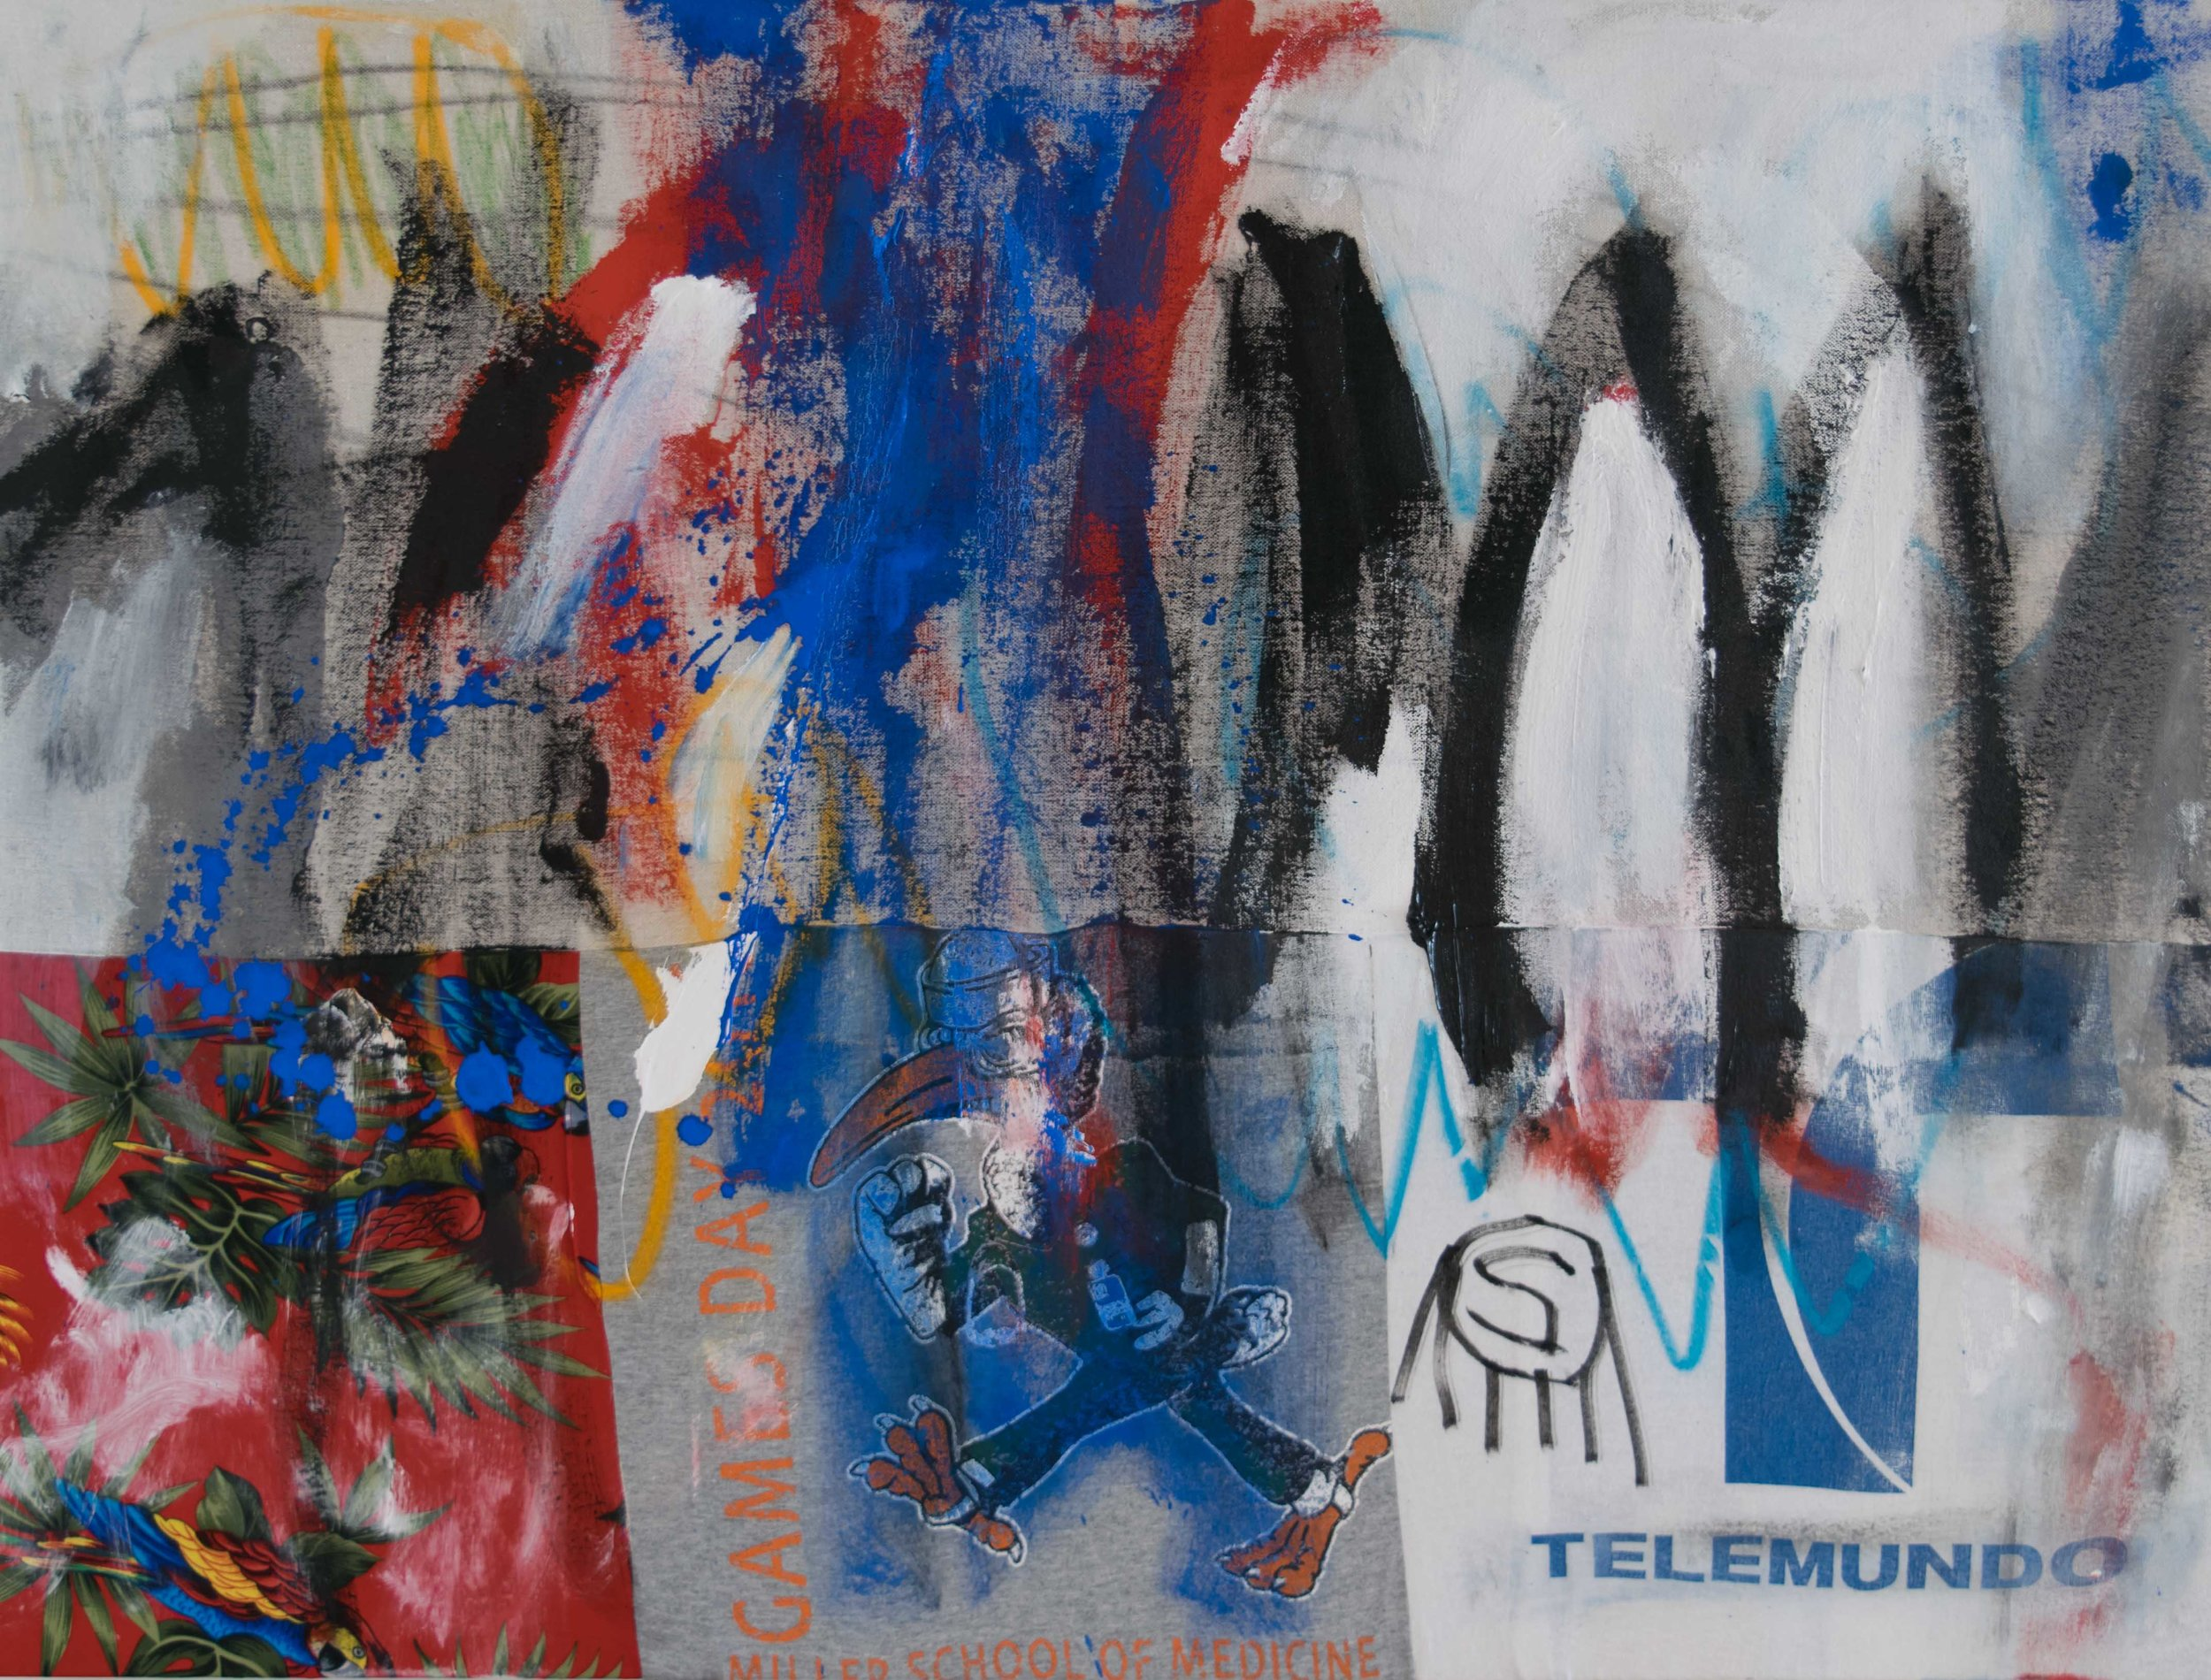 Game day live on Telemundo, 2019, Acrylic, Pastels and Pencil on Sewn fabric and textiles, 30 x 40 inches, $1,270